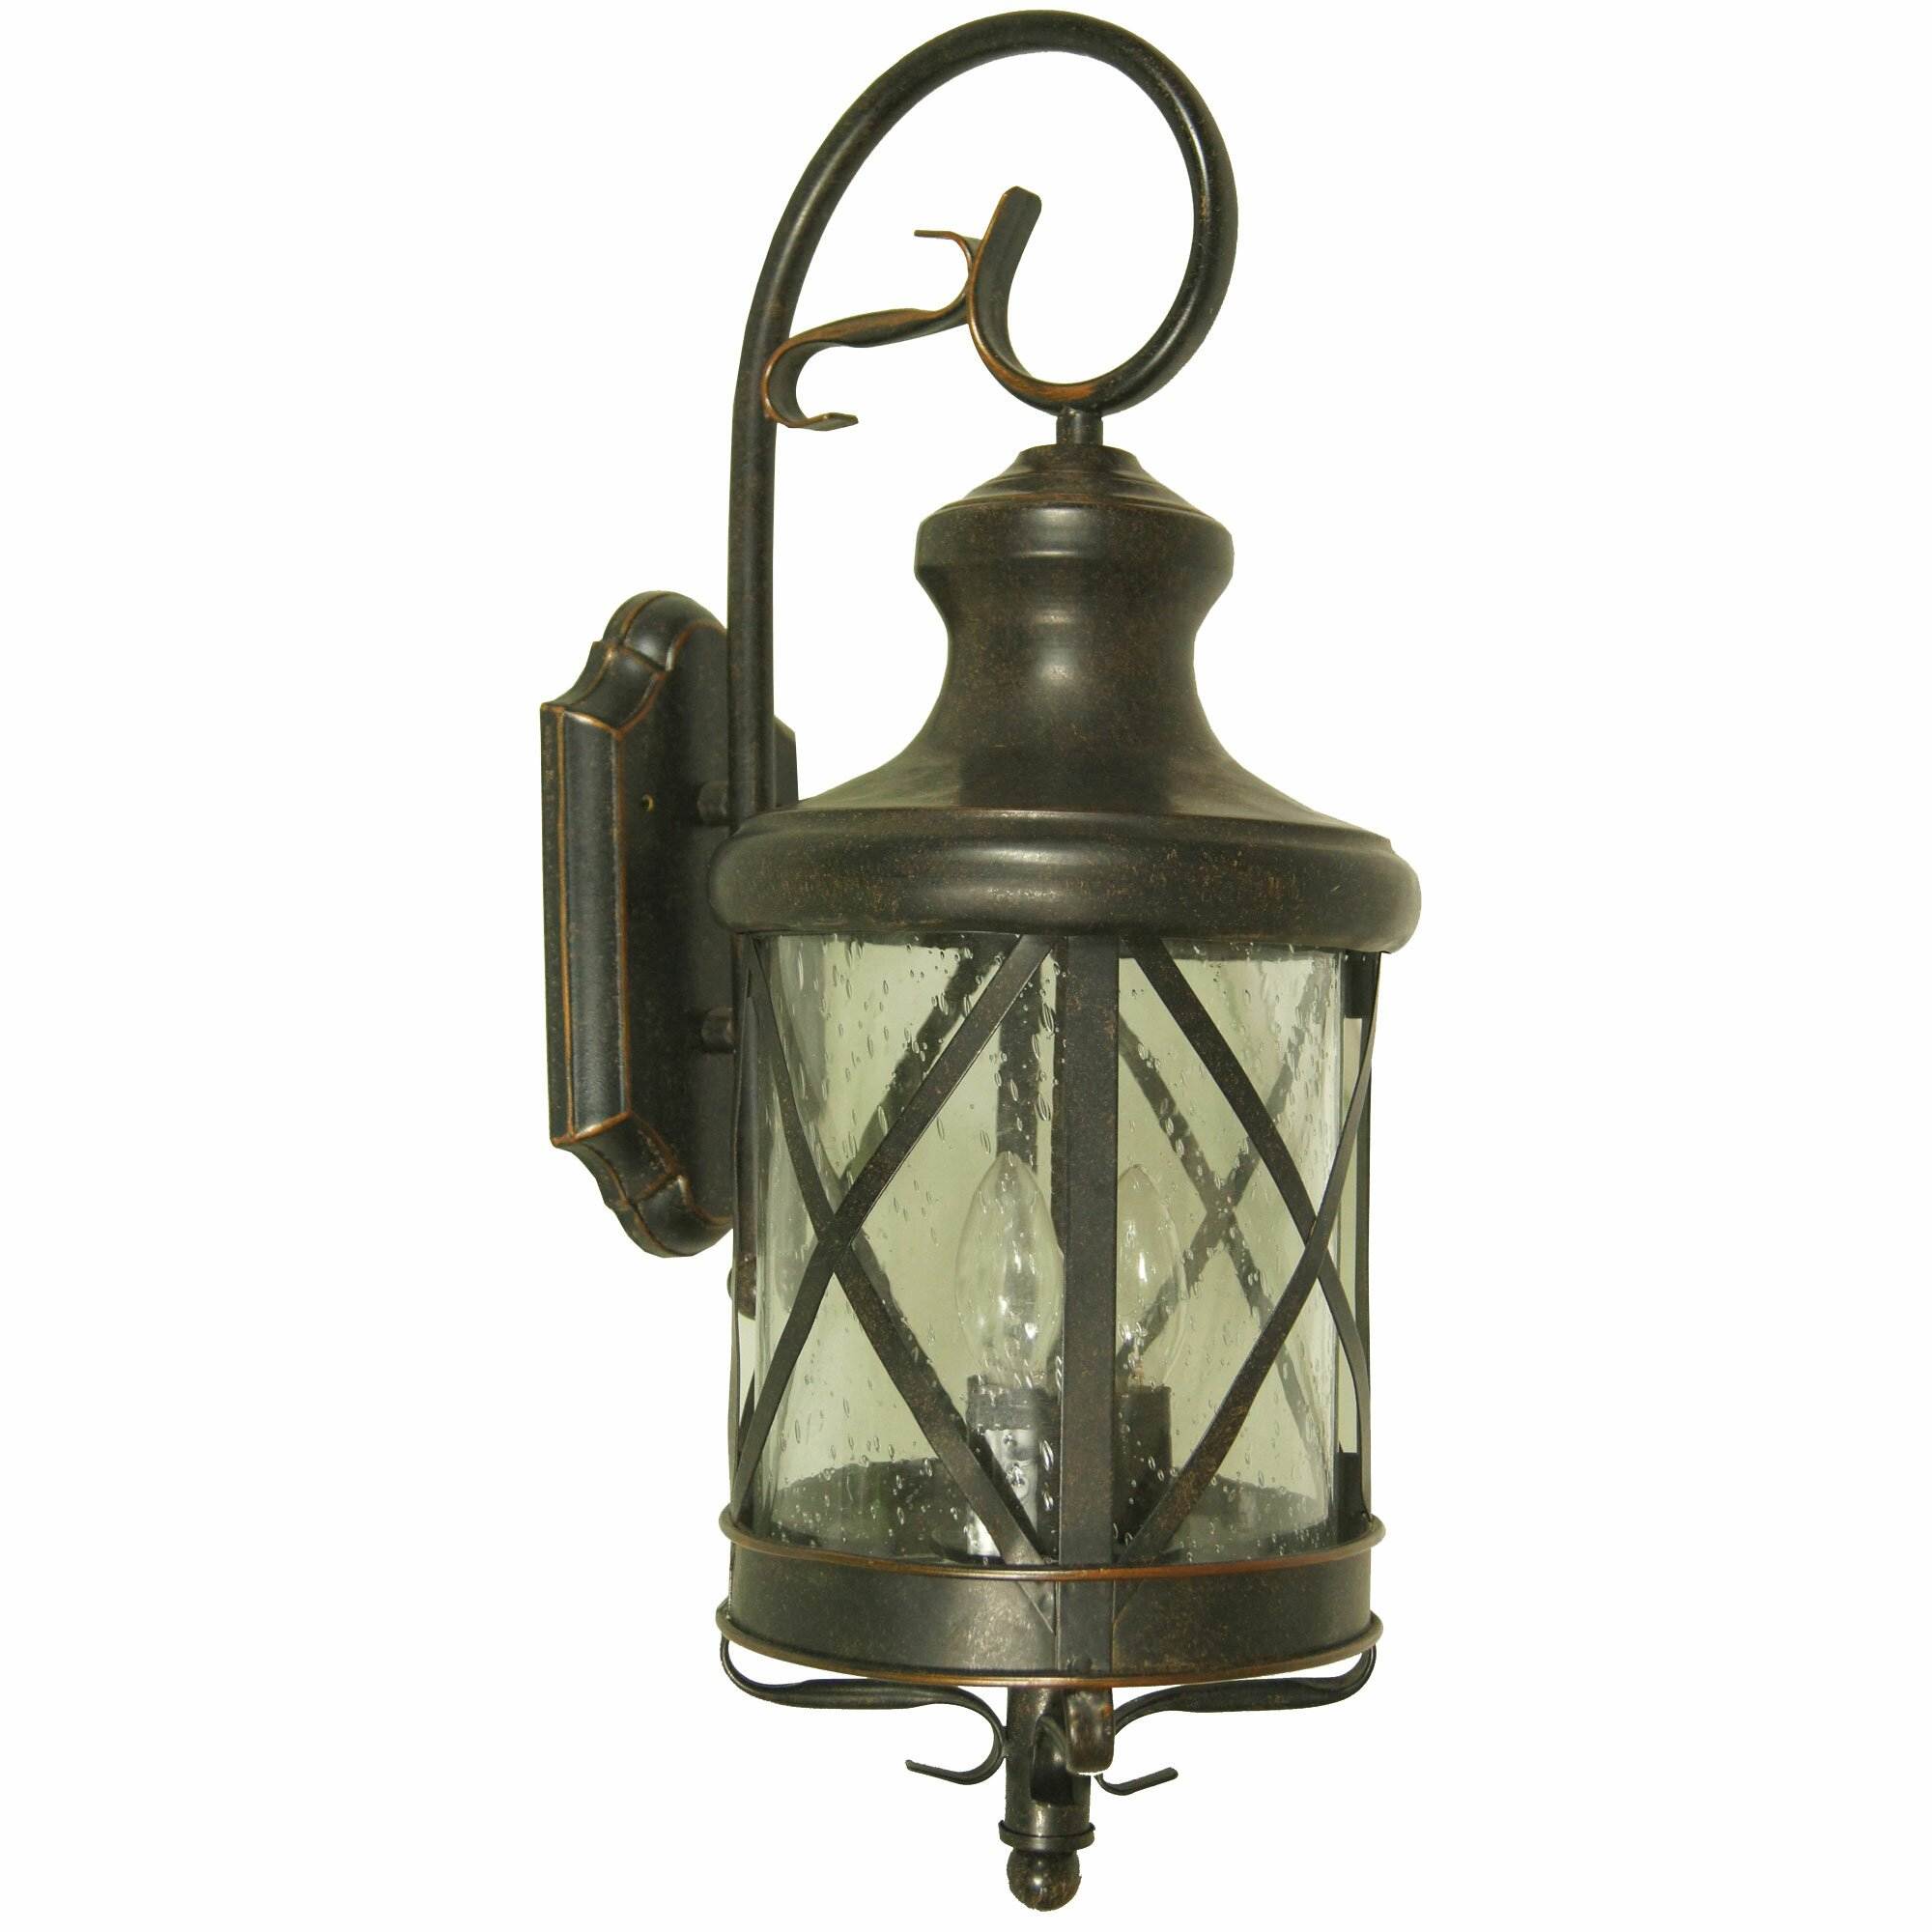 Outdoor Wall Light Decor : Yosemite Home Decor Lorenza 2 Light Outdoor Wall Lantern & Reviews Wayfair